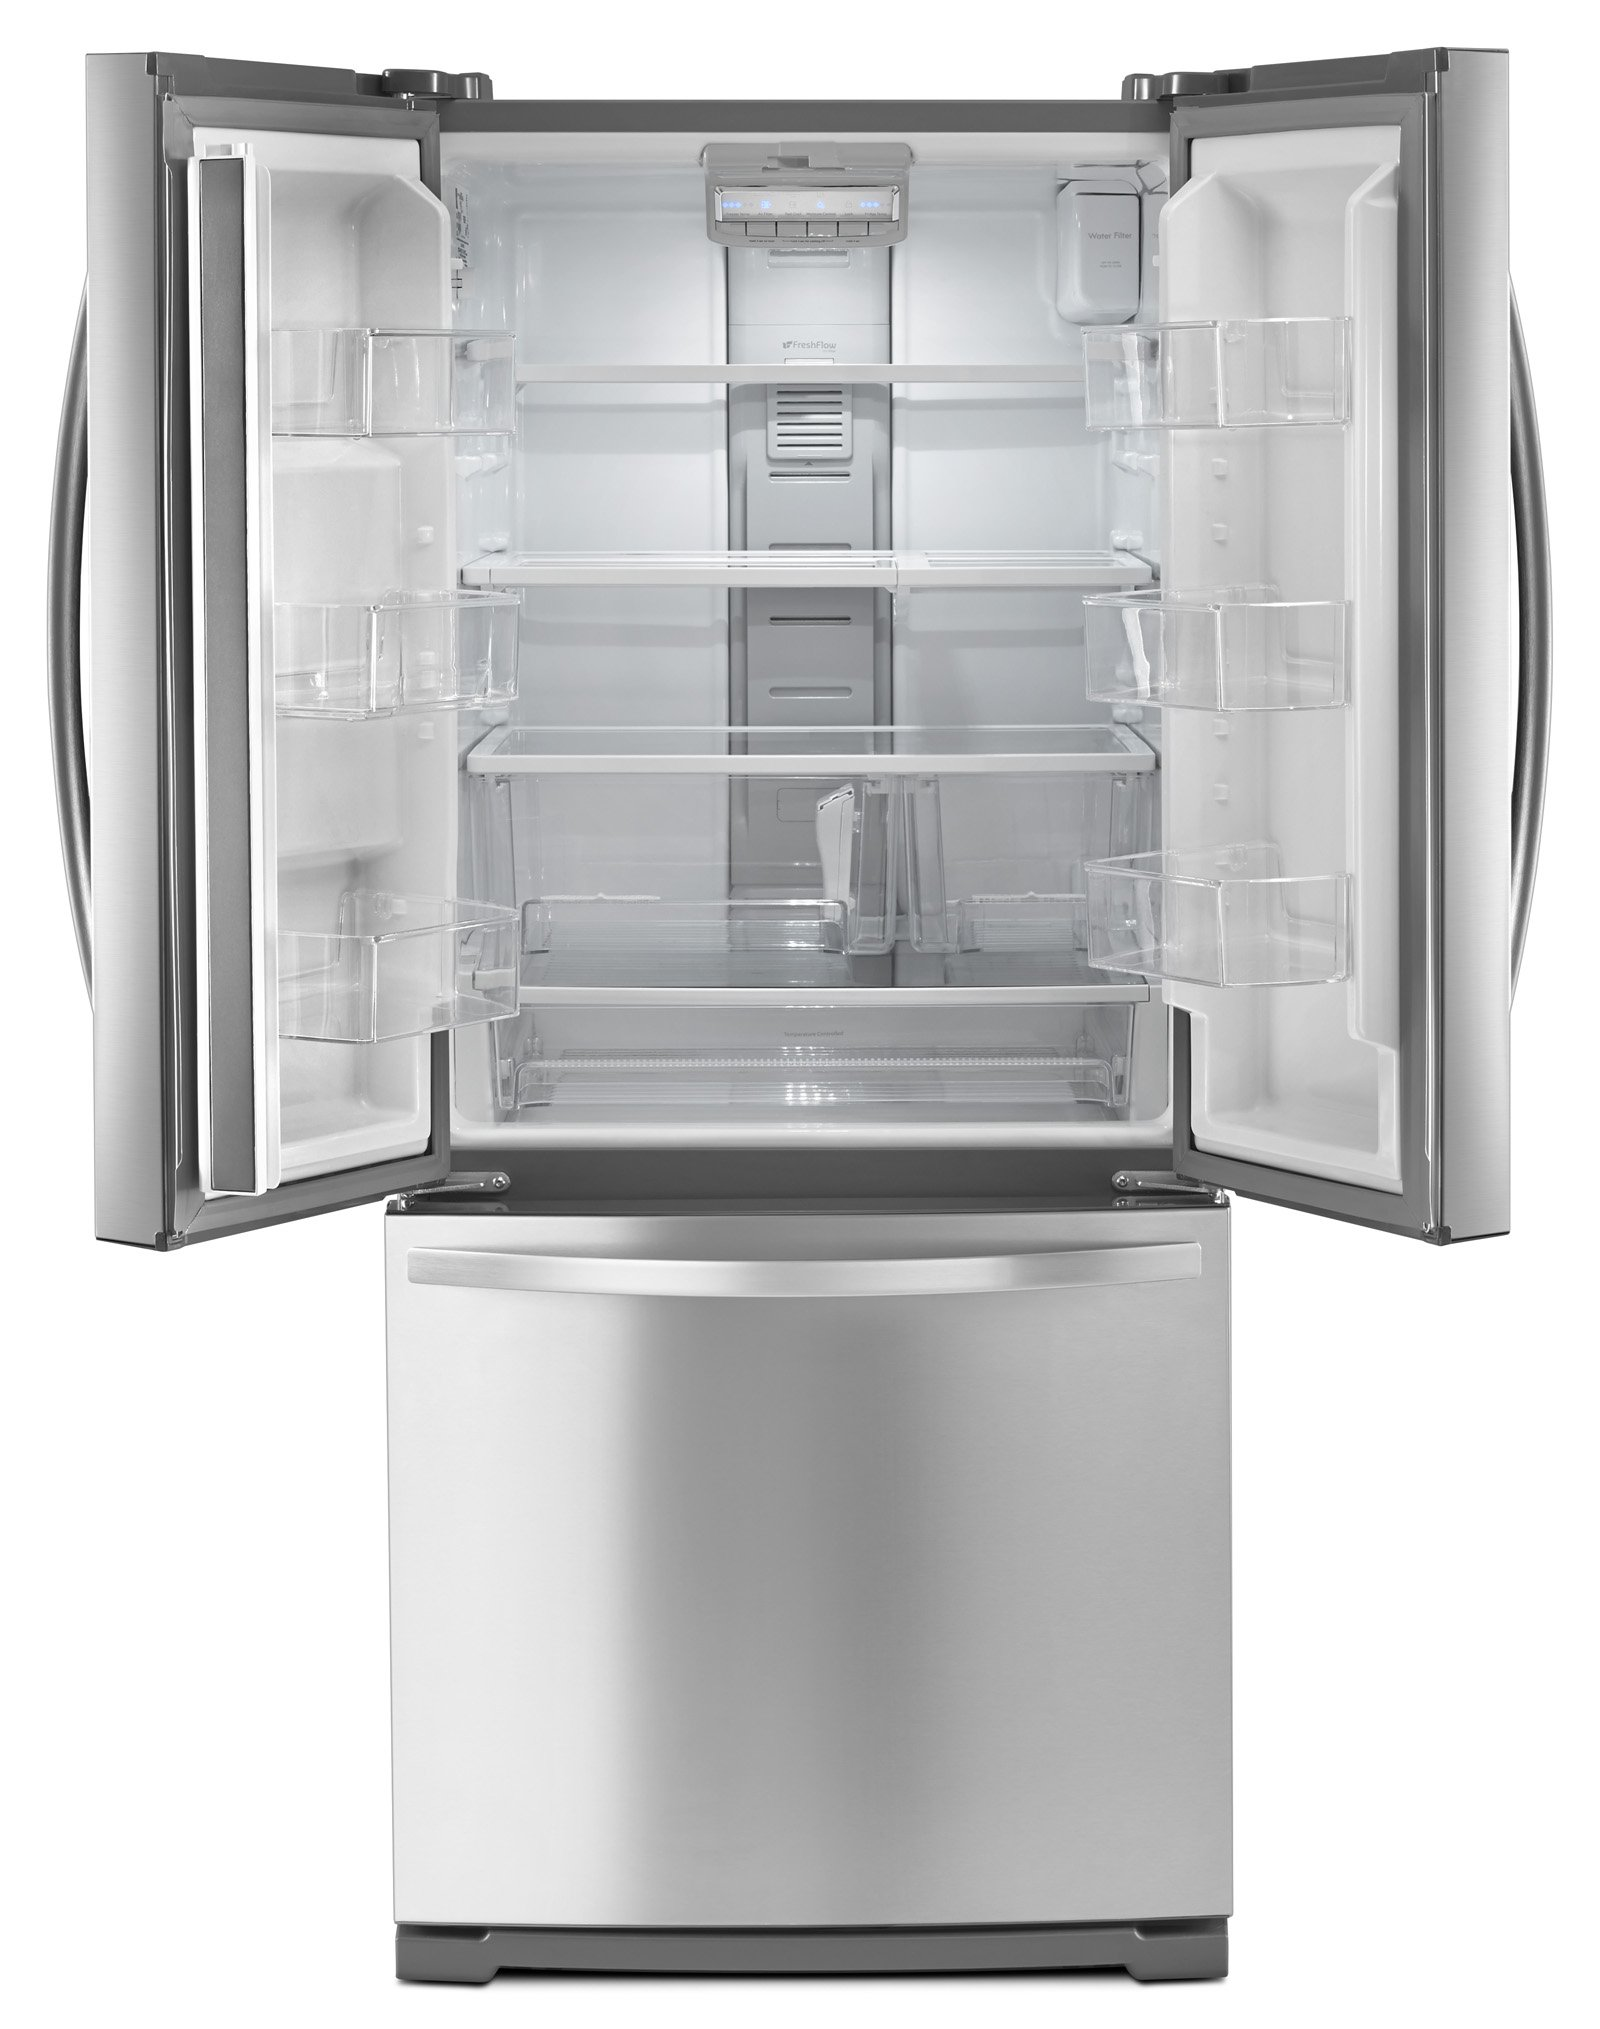 Kenmore 73003 19.5 cu. ft. Non-Dispense French Door Bottom-Freezer Refrigerator in Stainless Steel, includes delivery and hookup (Available in select cities only) by Kenmore (Image #4)